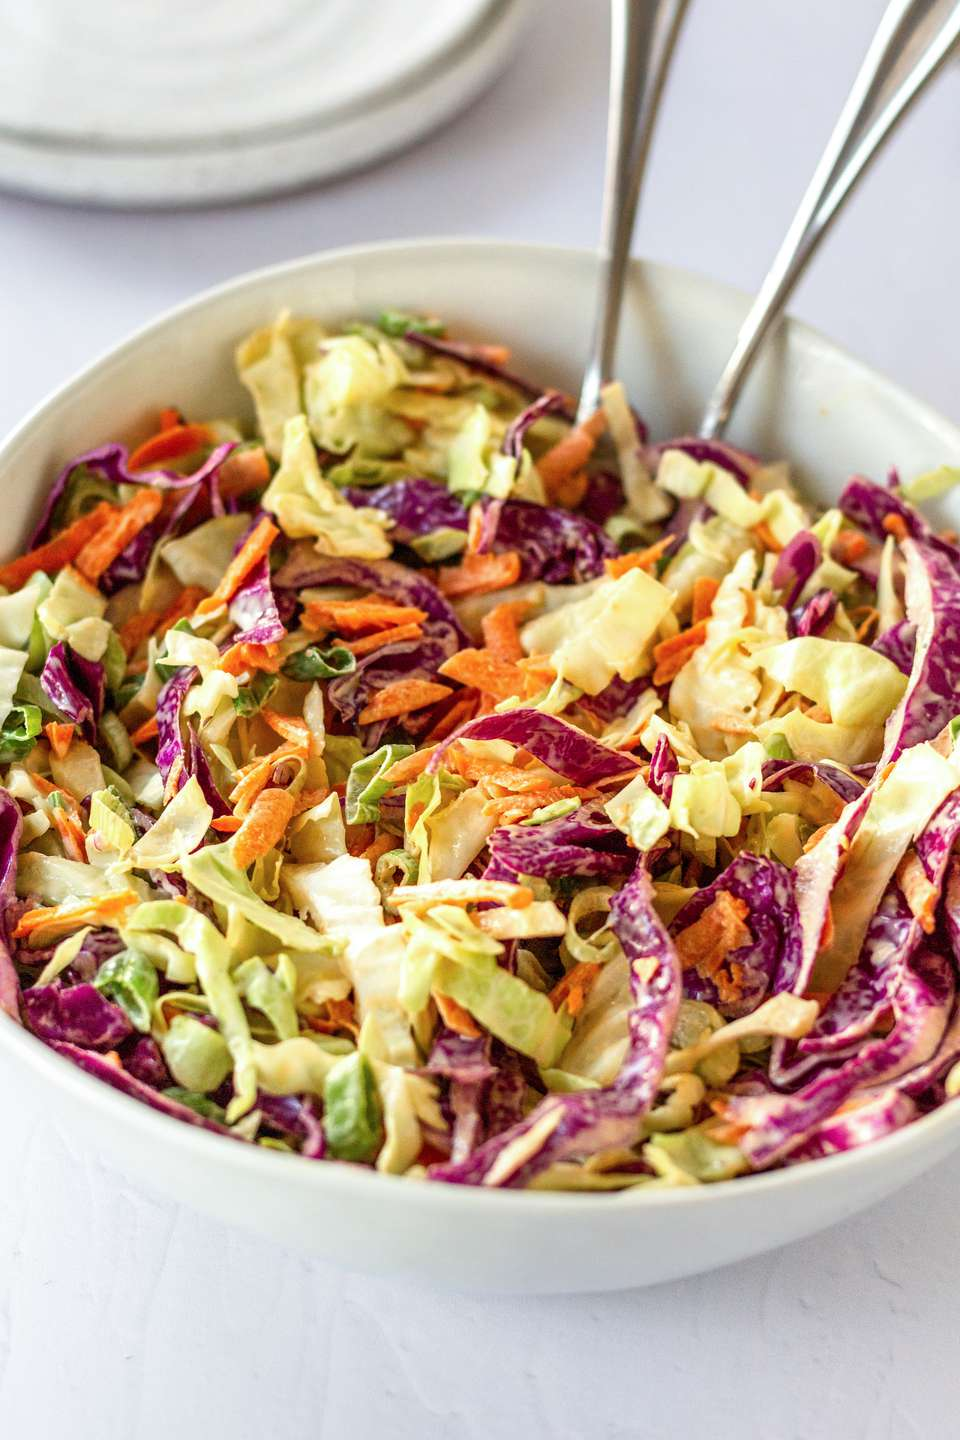 Bright Classic Coleslaw in a white bowl.